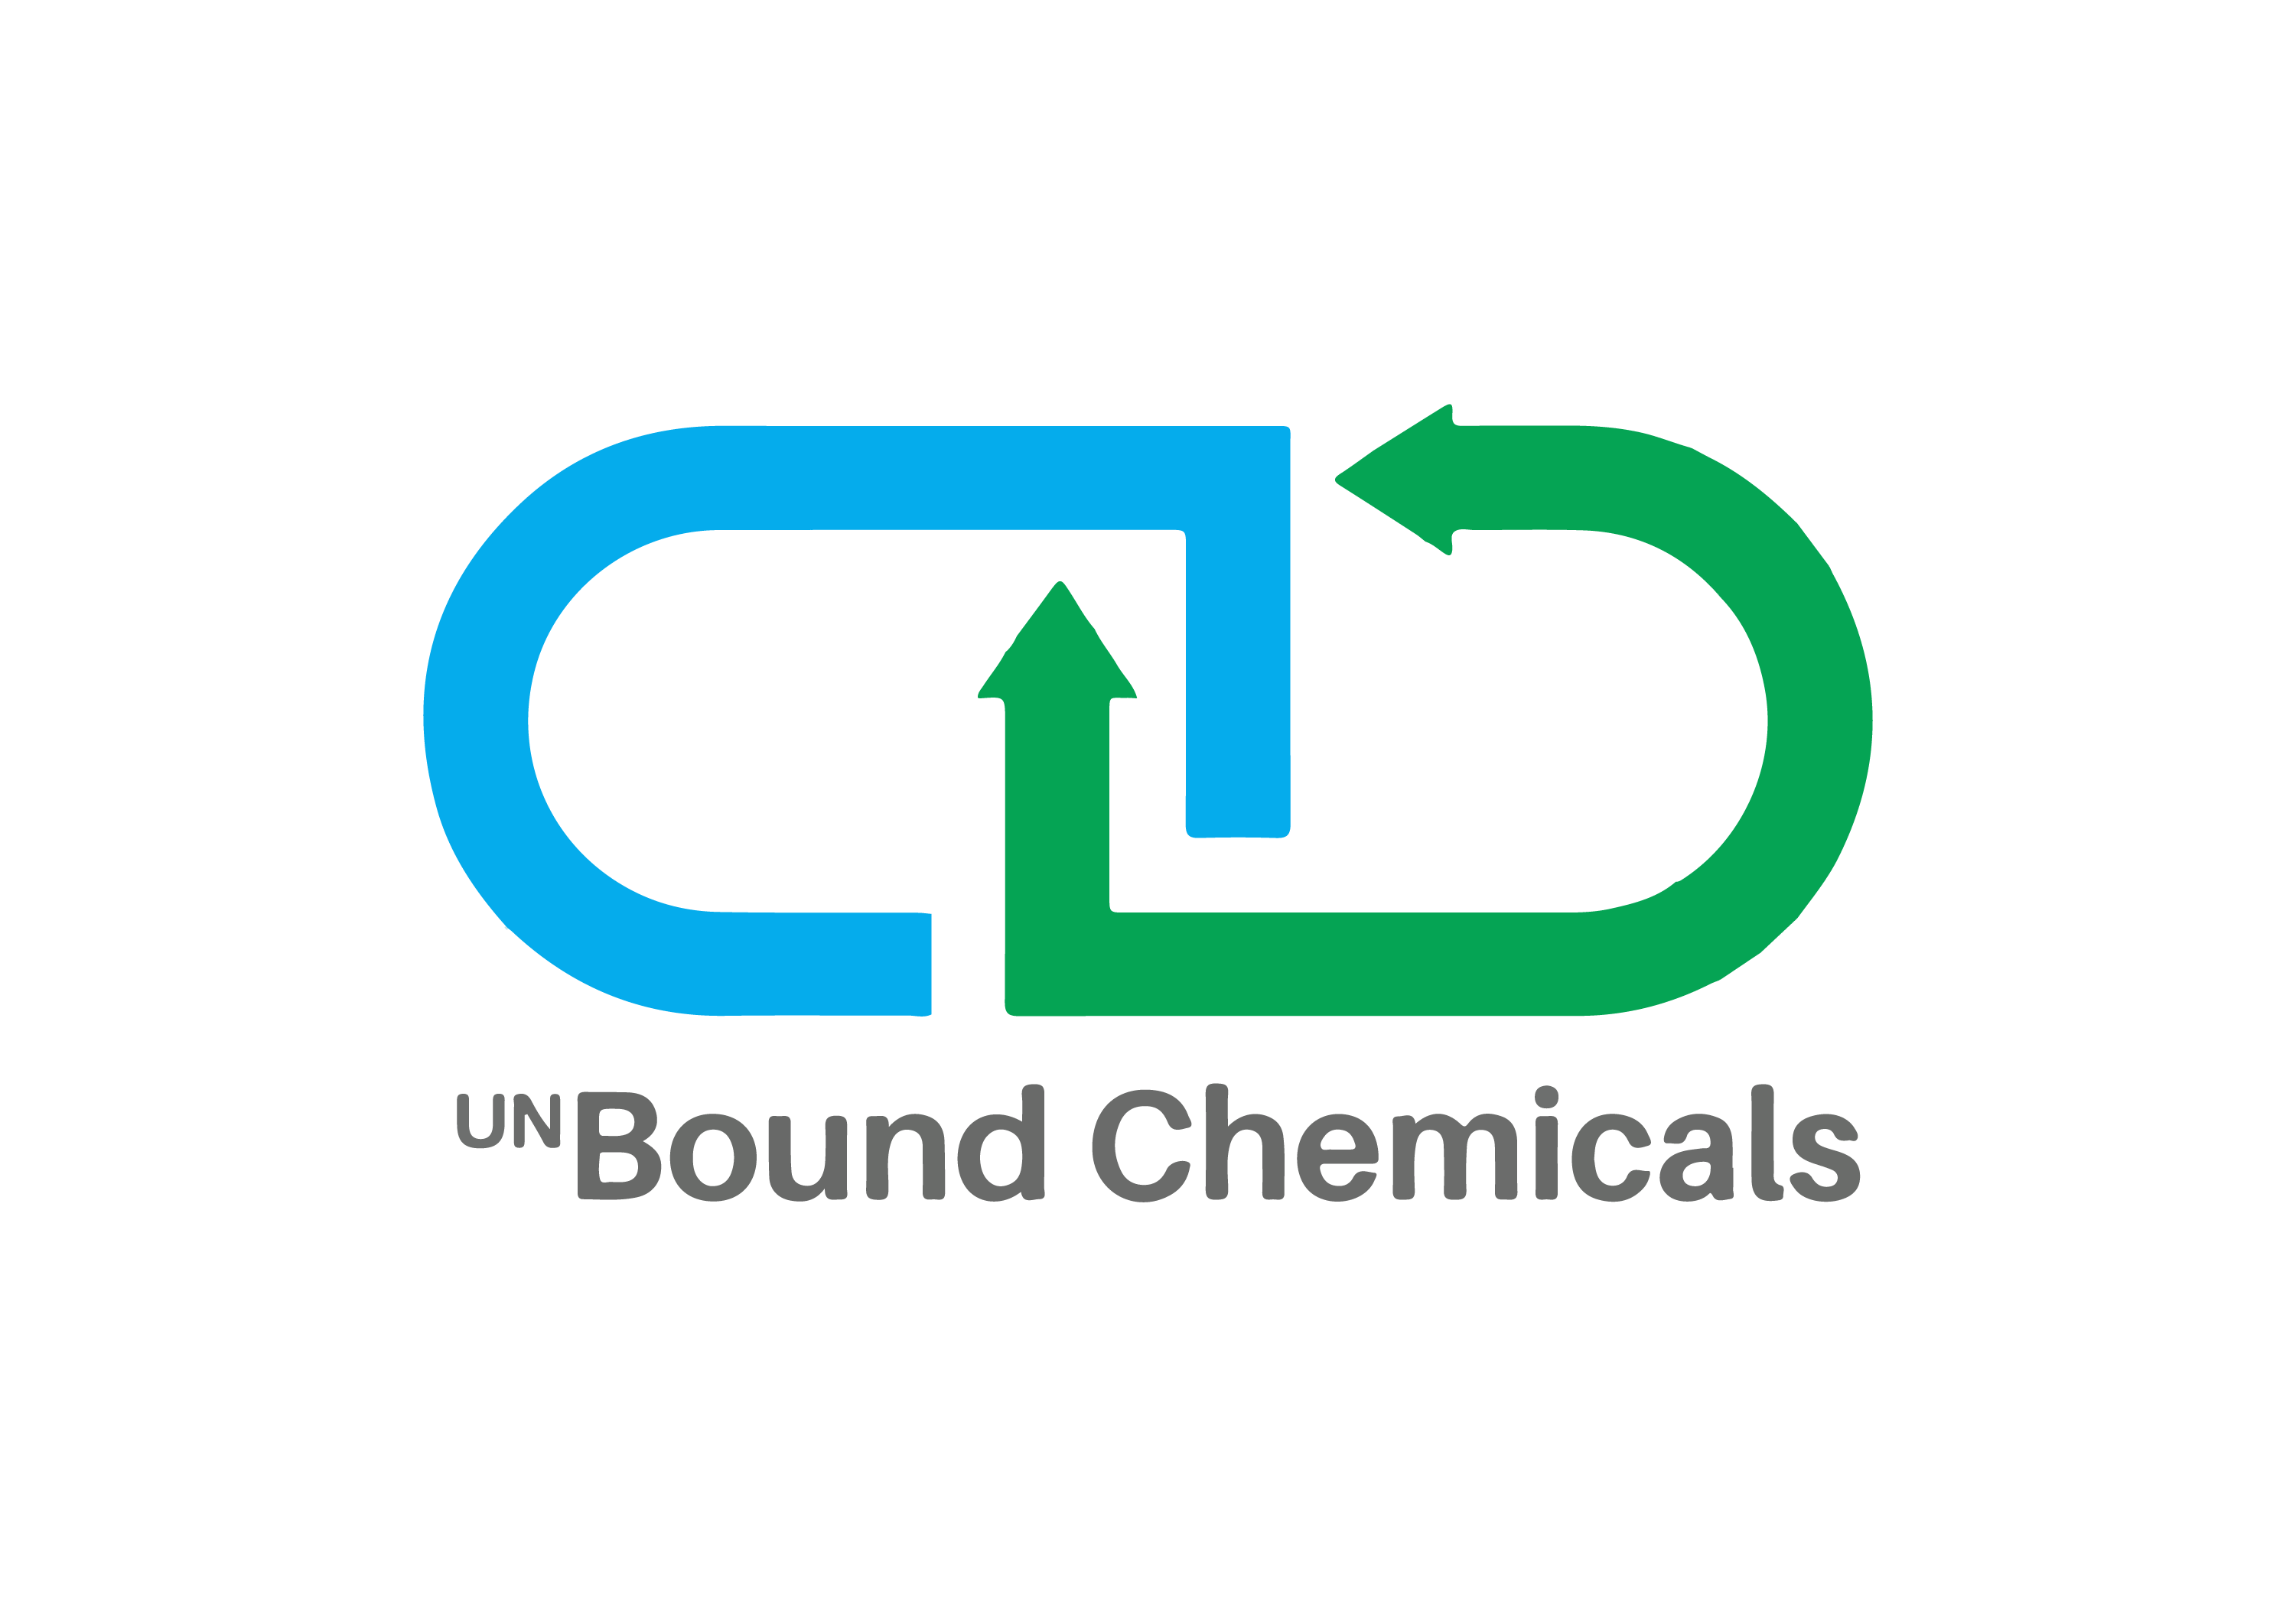 unbound chemicals enginuity